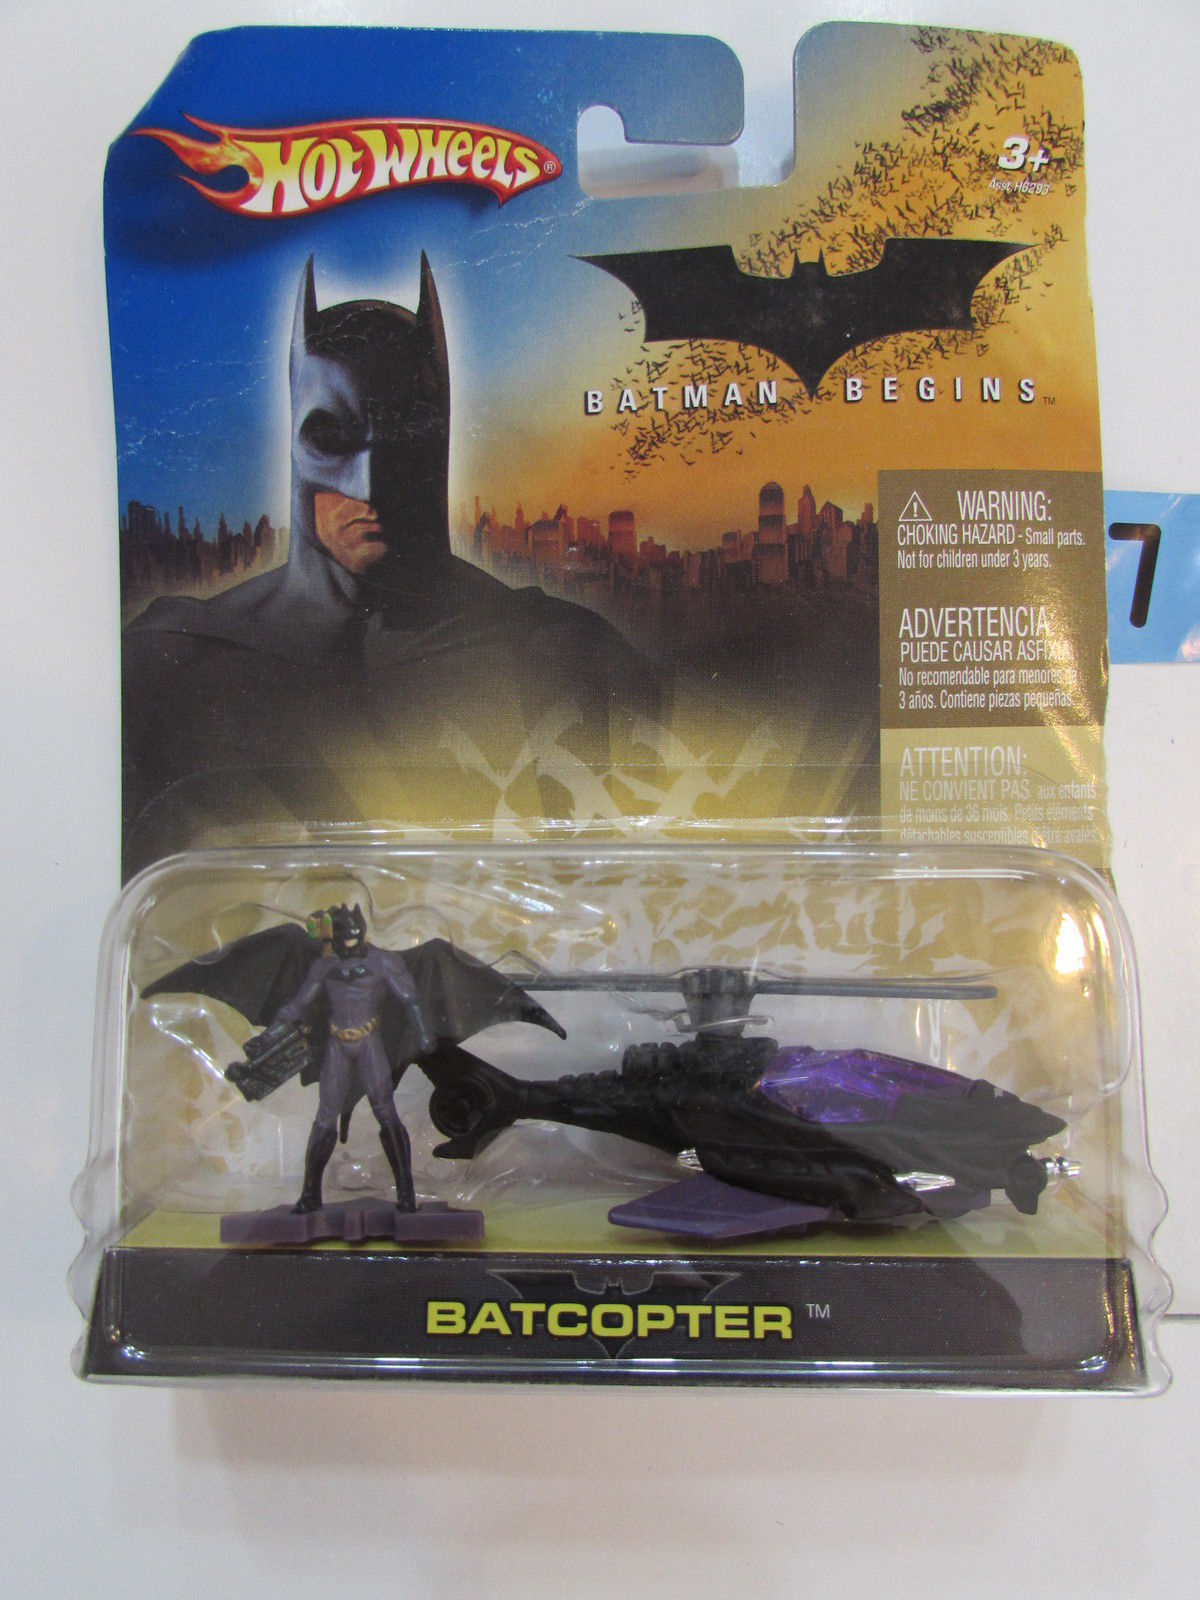 HOT WHEELS 2005 BATMAN BEGINS BATCOPTER WITH FIGURE MIB